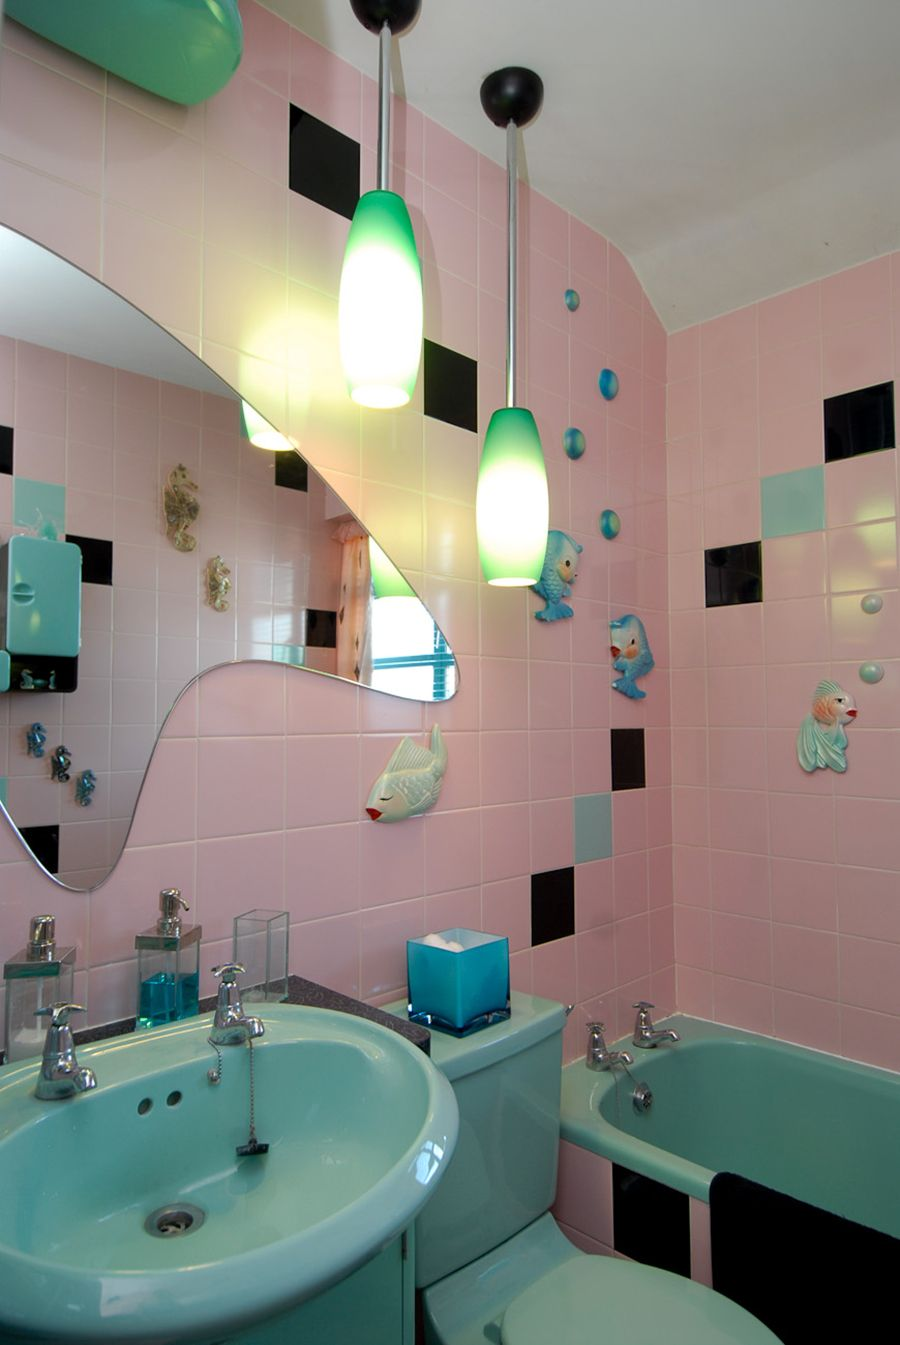 1950u2032s House | Air Spaces. Retro BathroomsDream Bathrooms50s ...